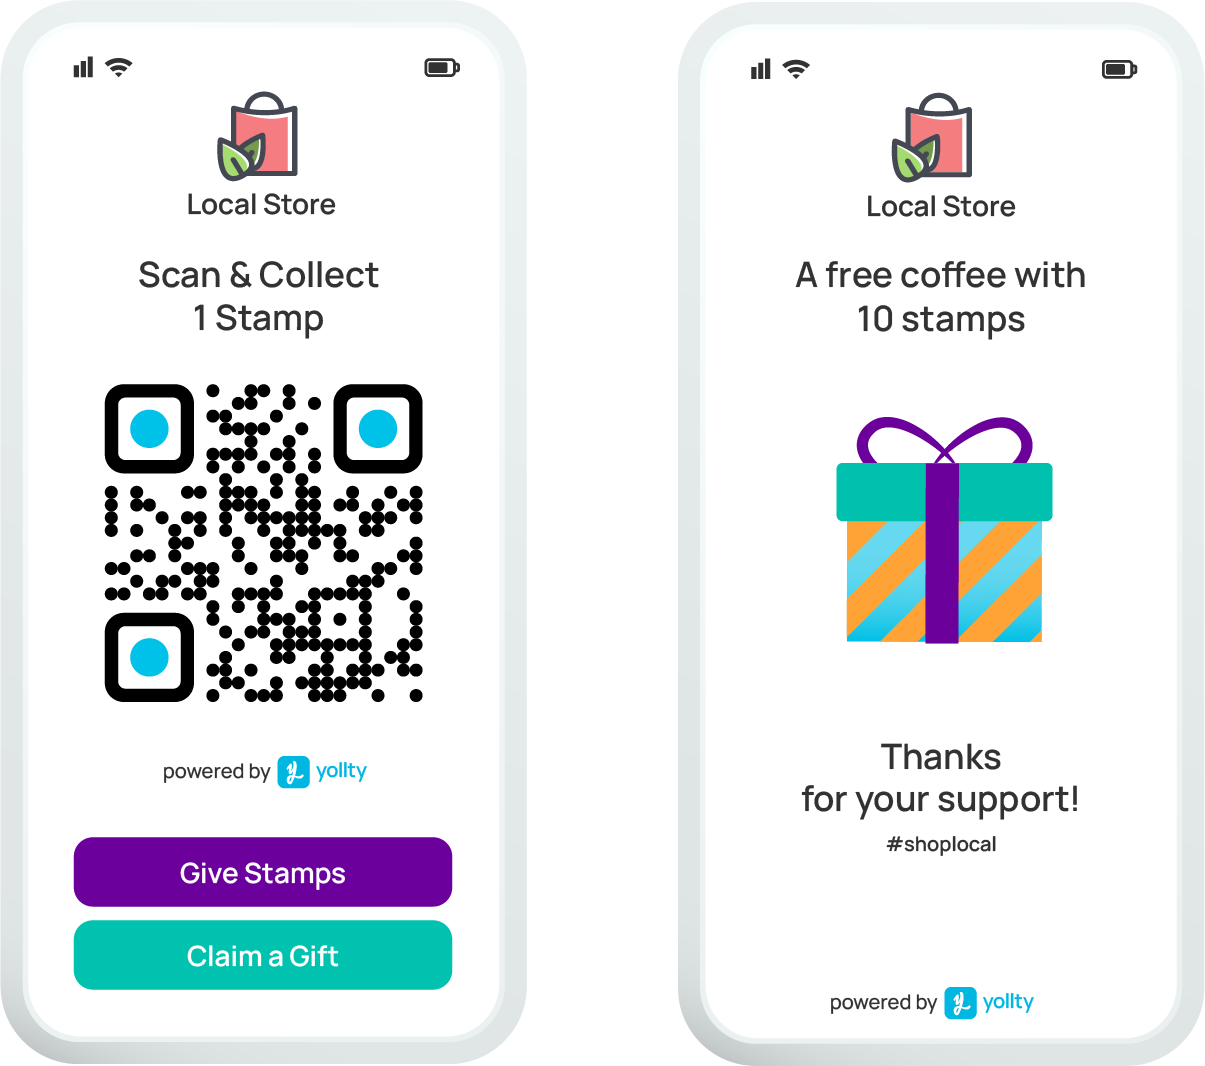 The Business app for Yollty to generate QR Codes